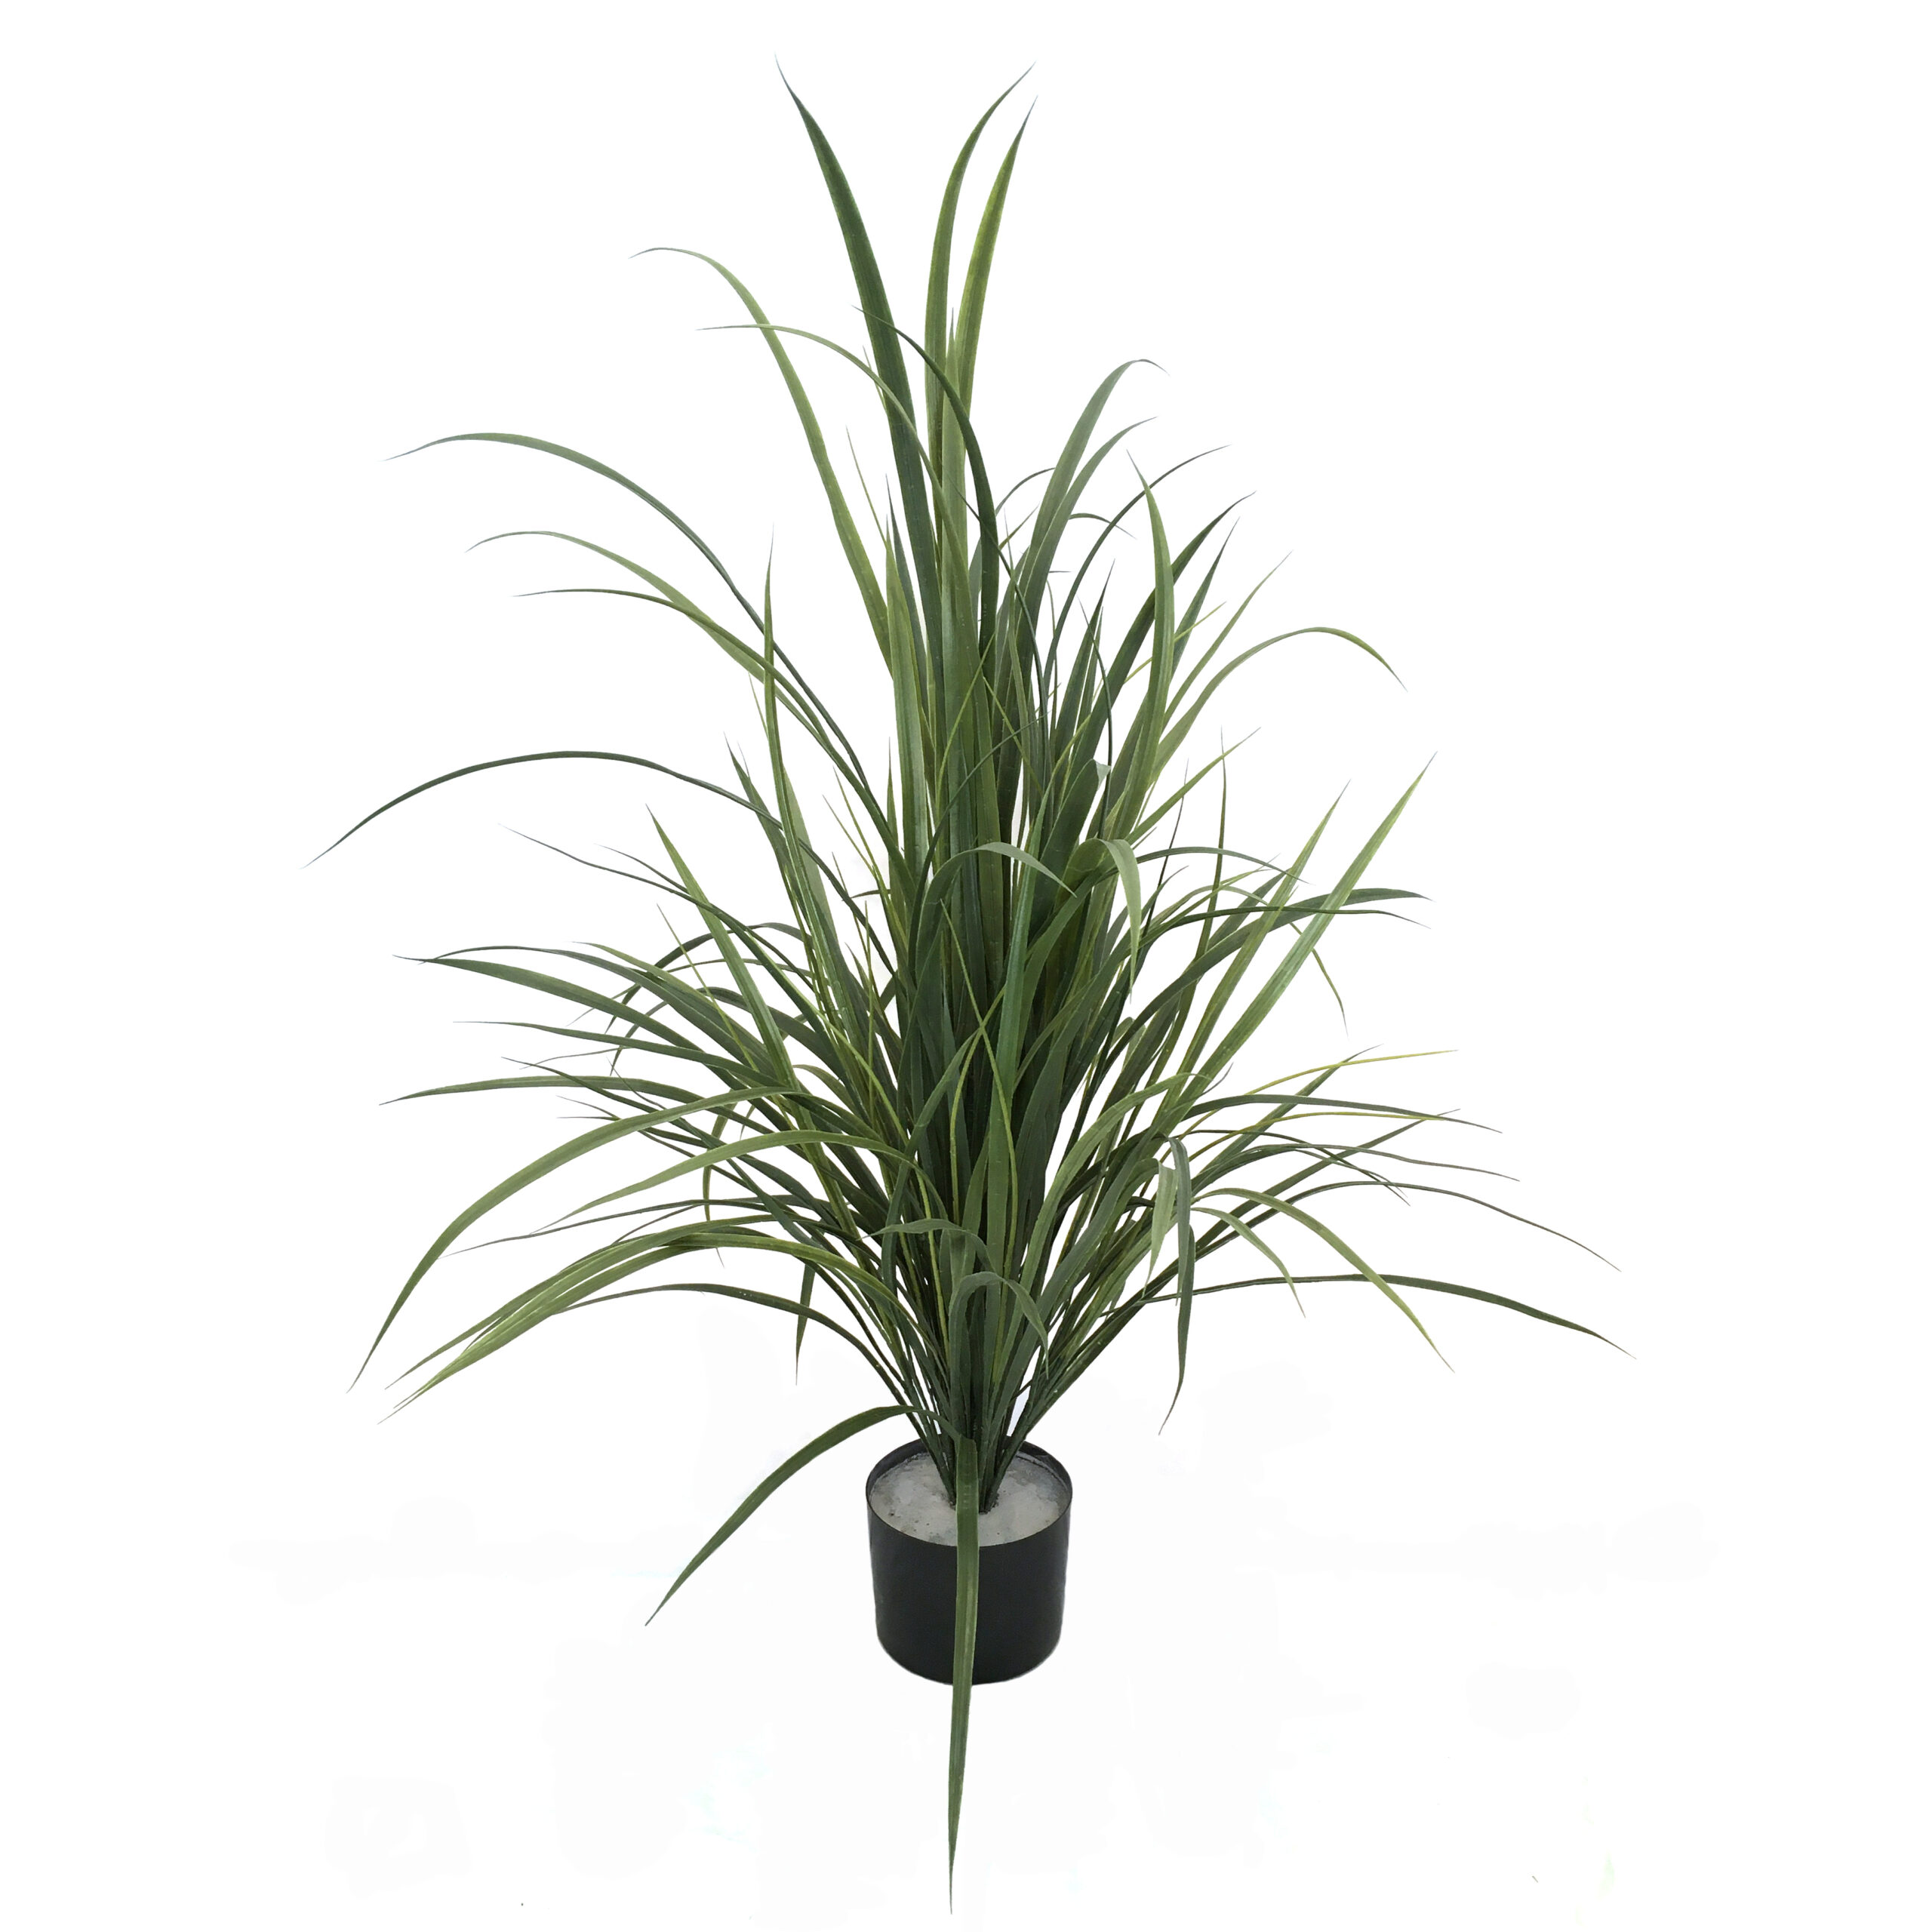 17183_agave_reed105cm1